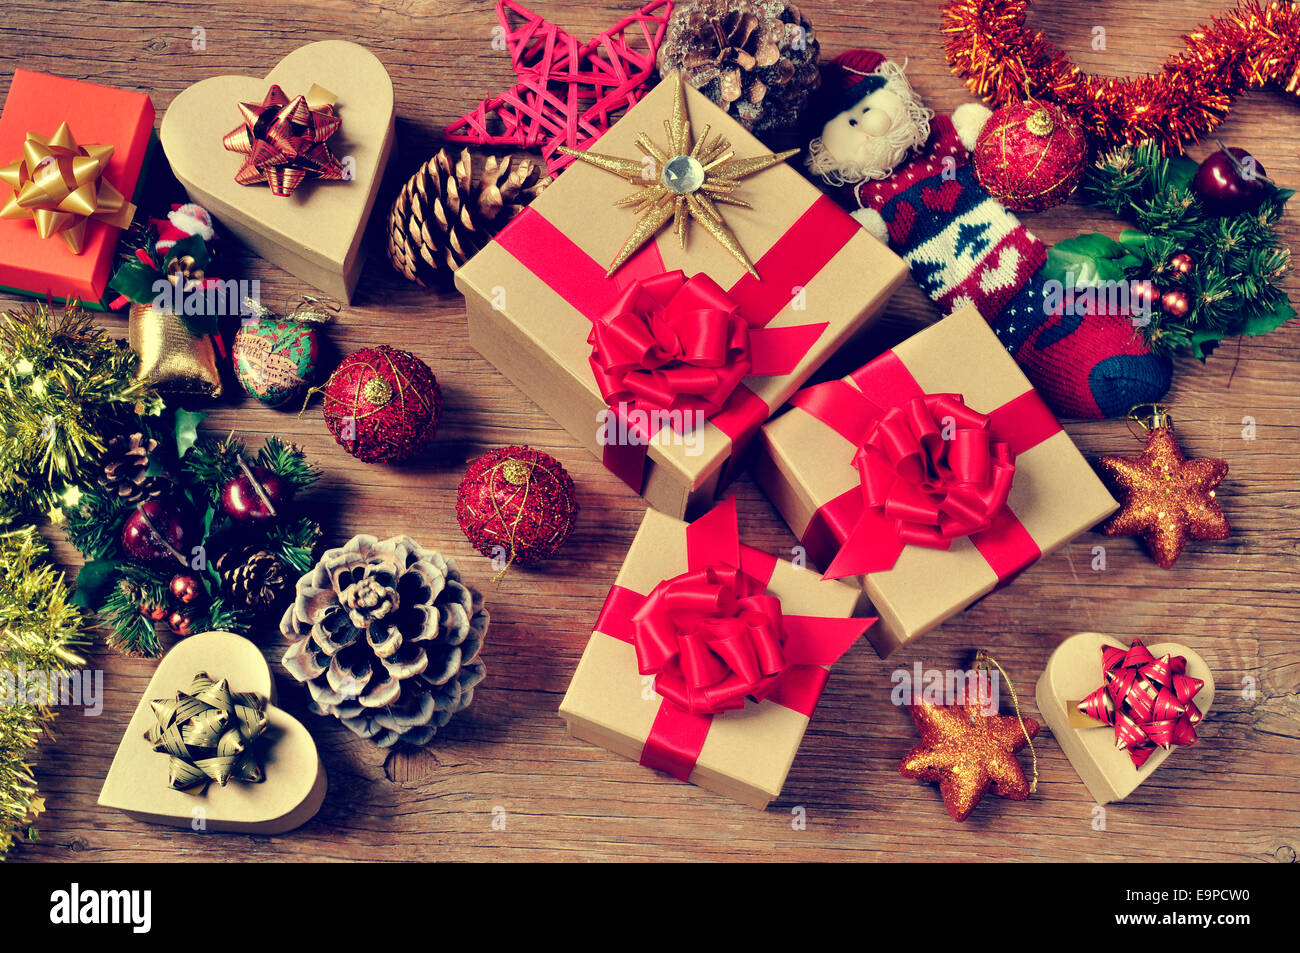 a pile of gifts and christmas ornaments, such as christmas balls, stars and tinsel, on a rustic wooden table - Stock Image